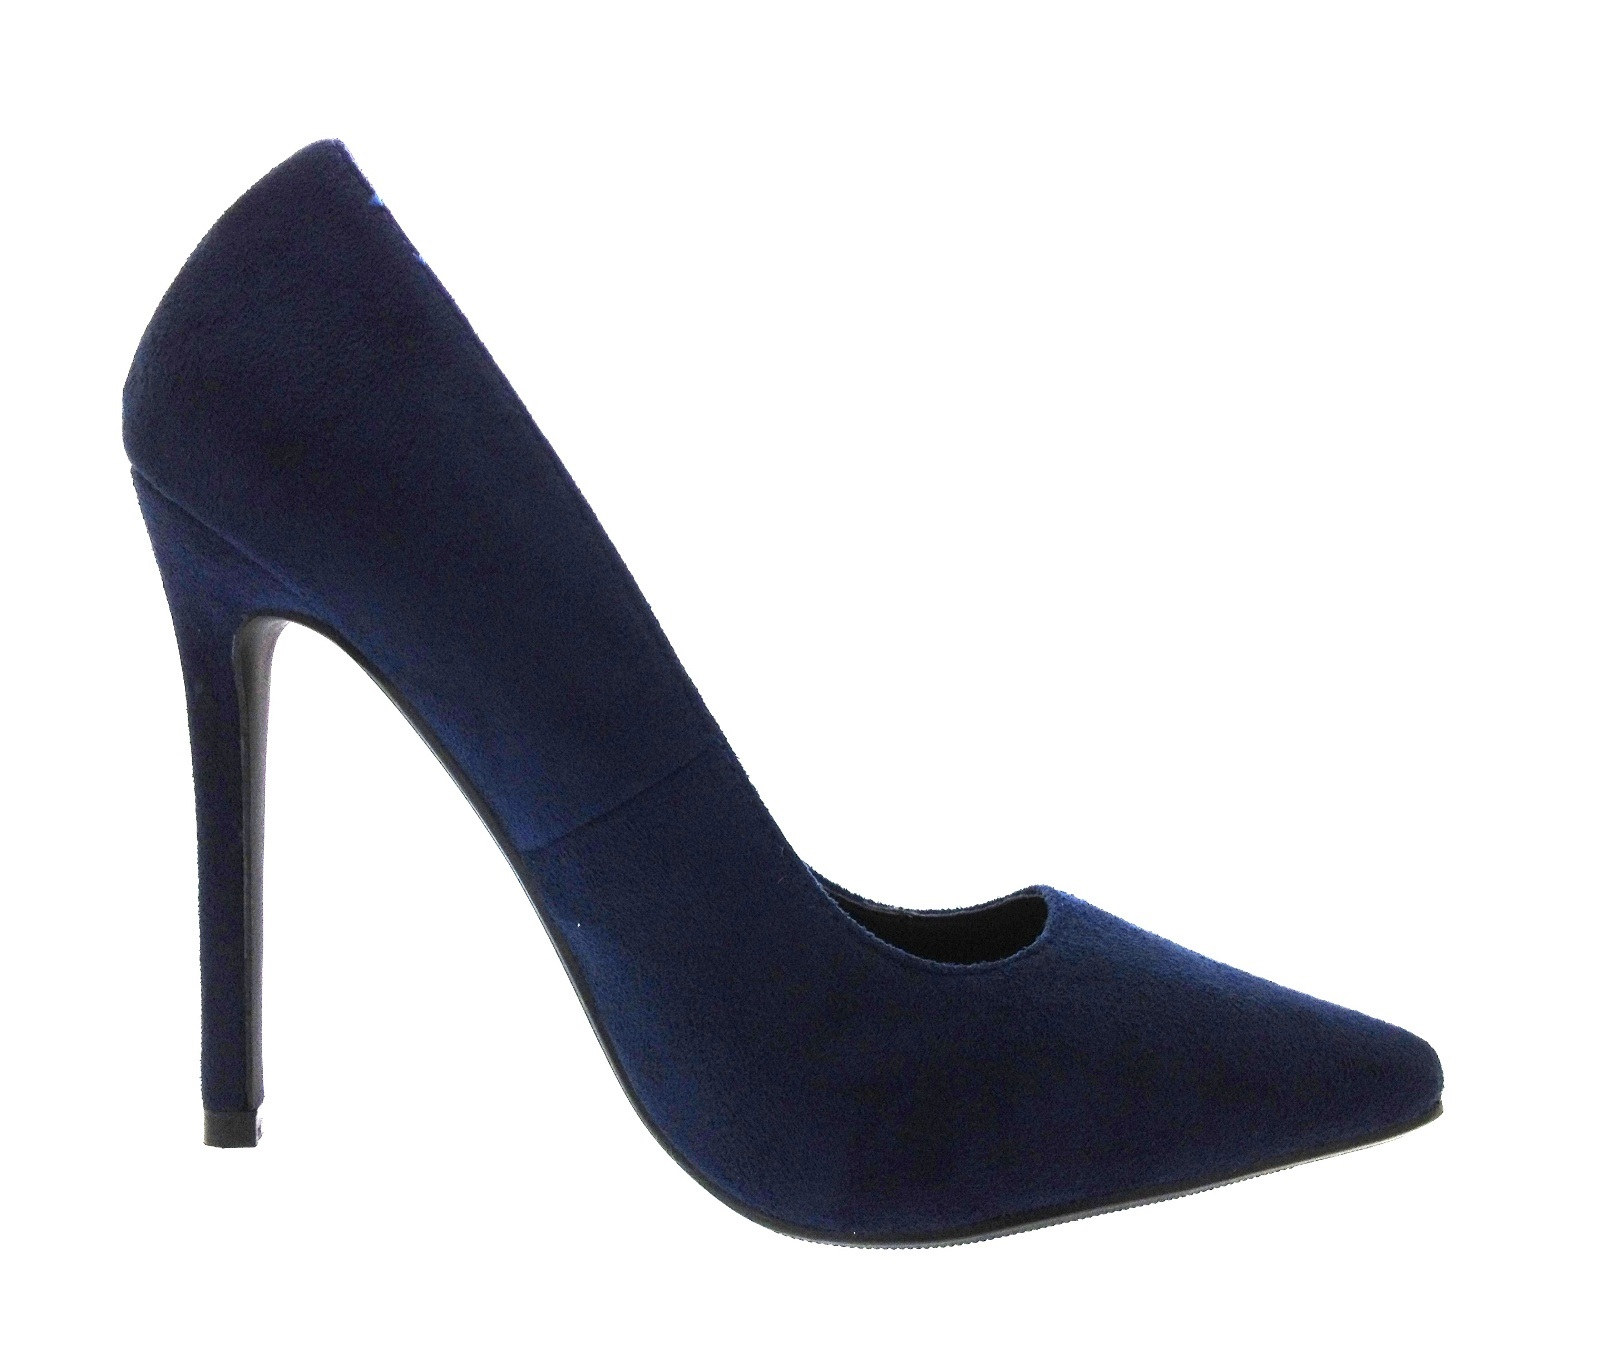 Ladies Navy High Heeled Shoes